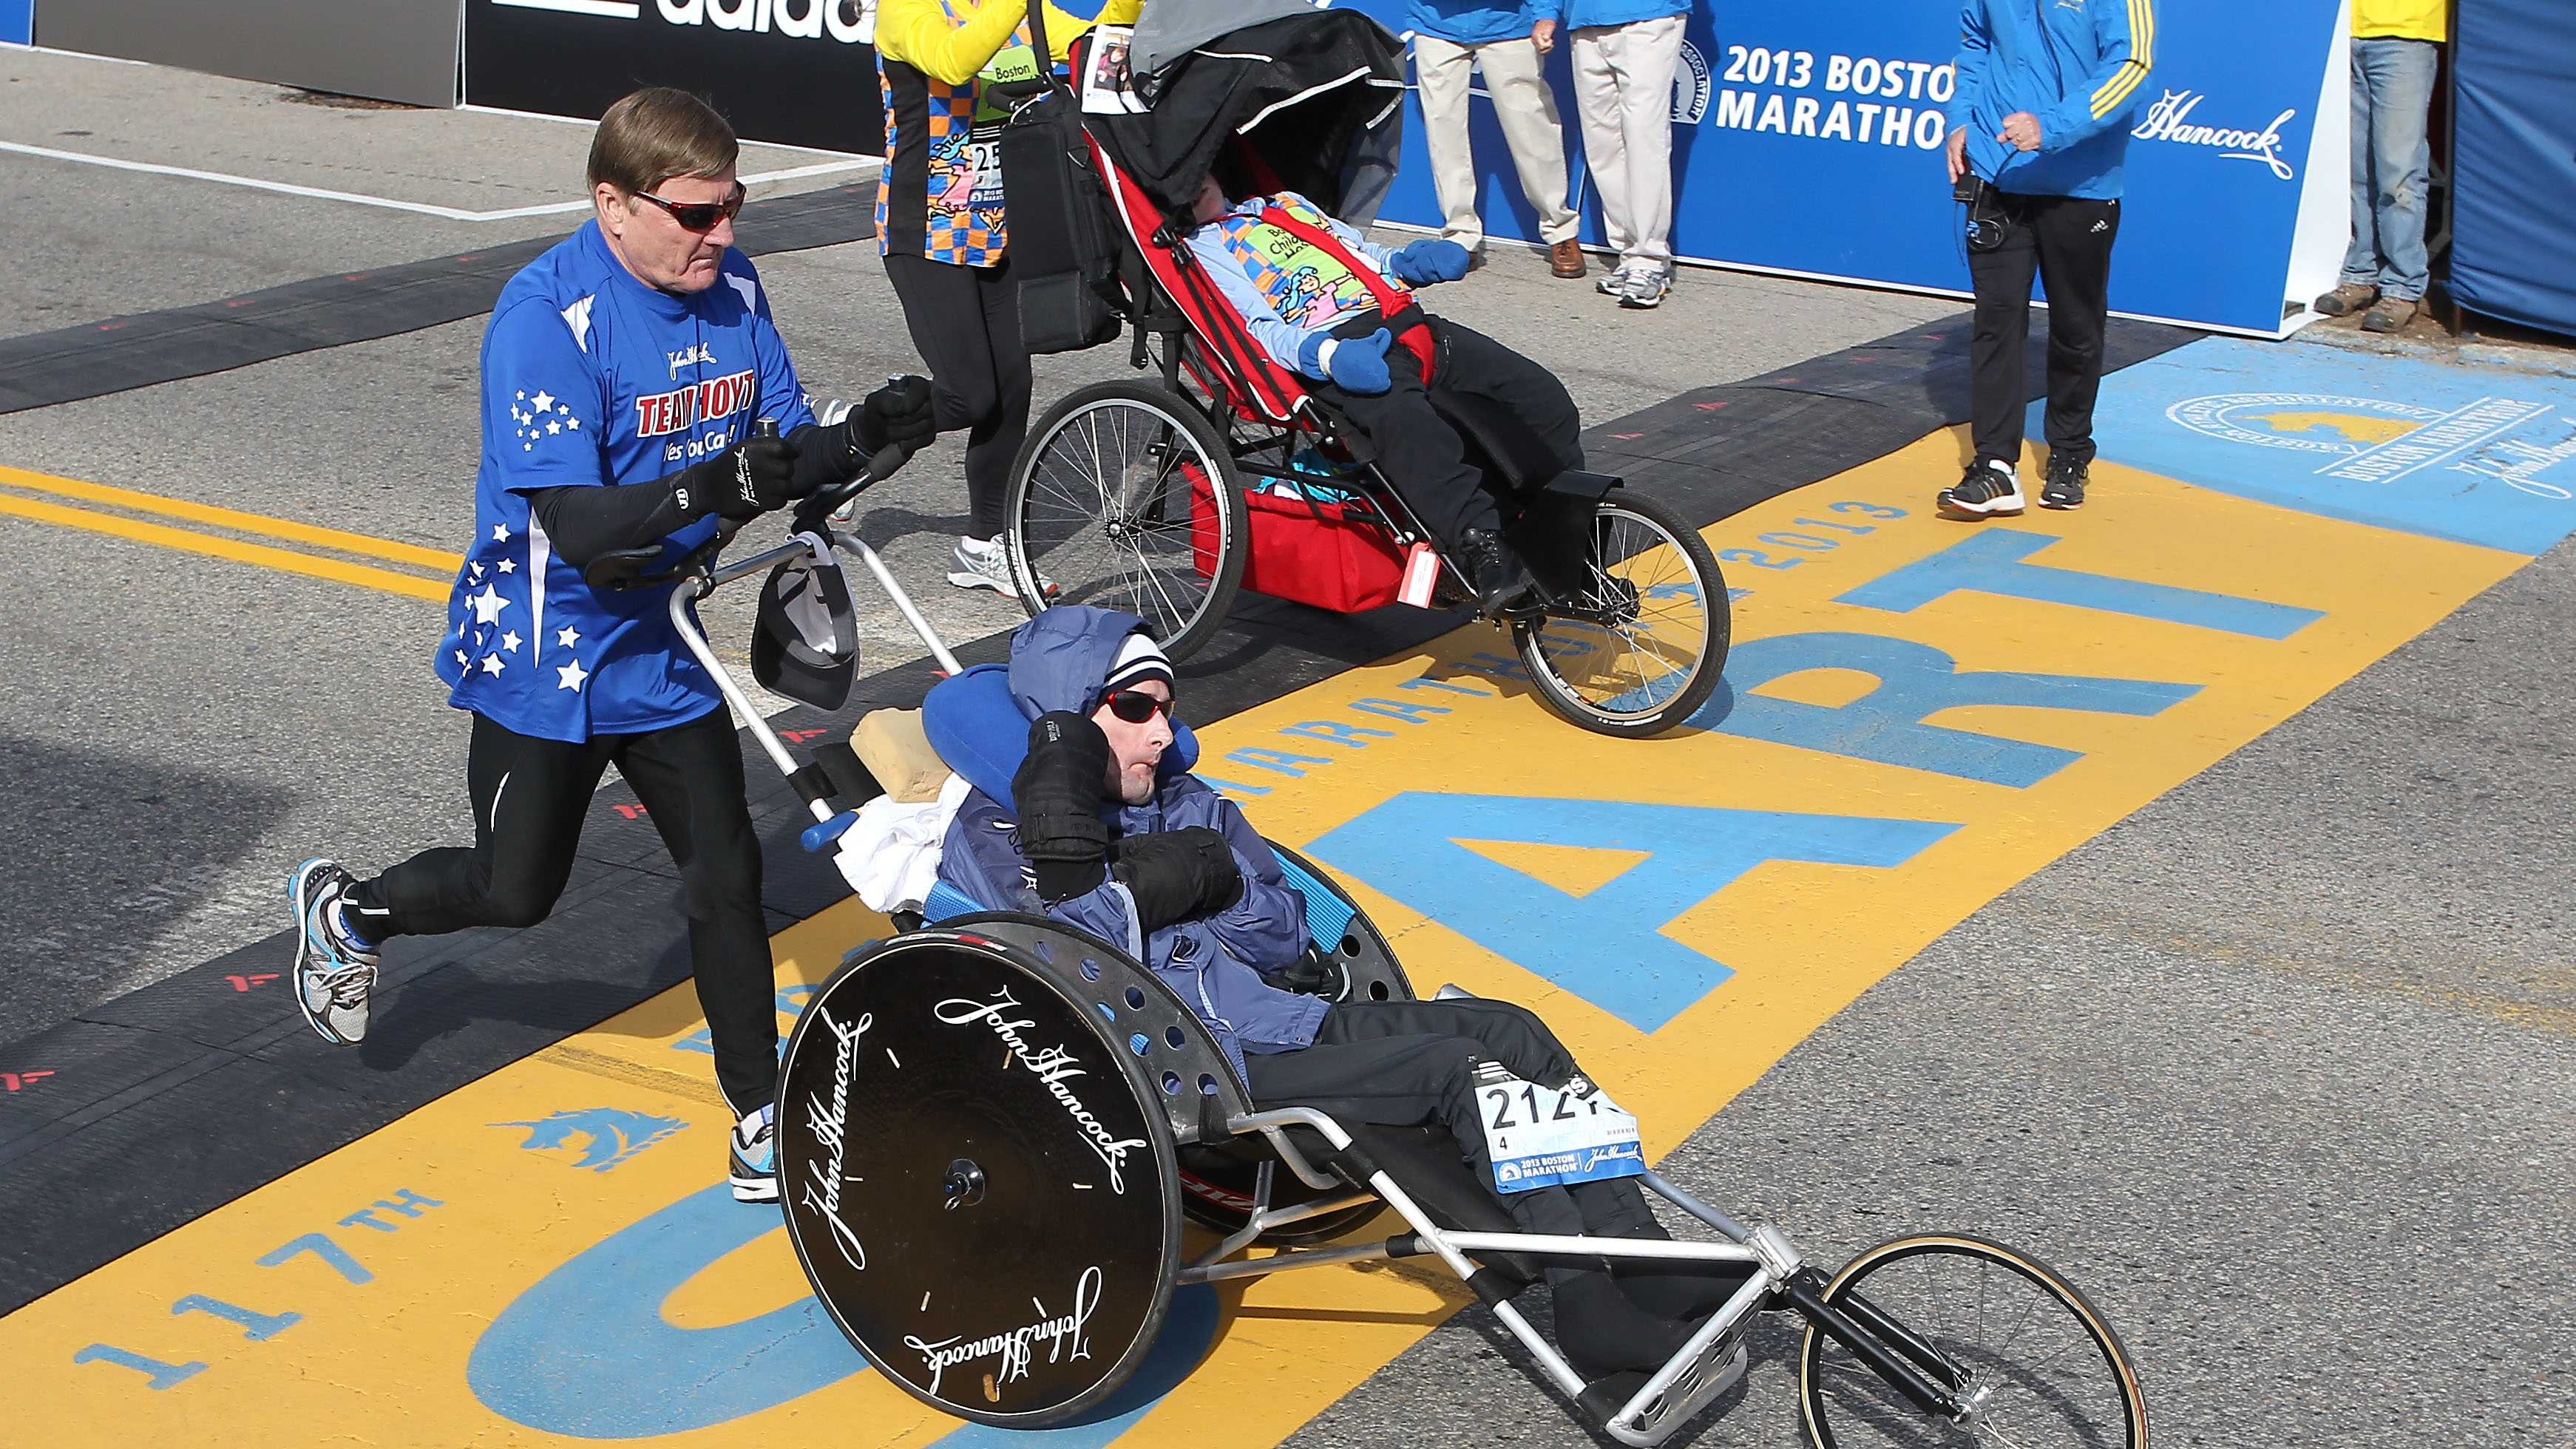 Dick Hoyt, left, and his son, Rick, start of the 117th running of the Boston Marathon, in Hopkinton.